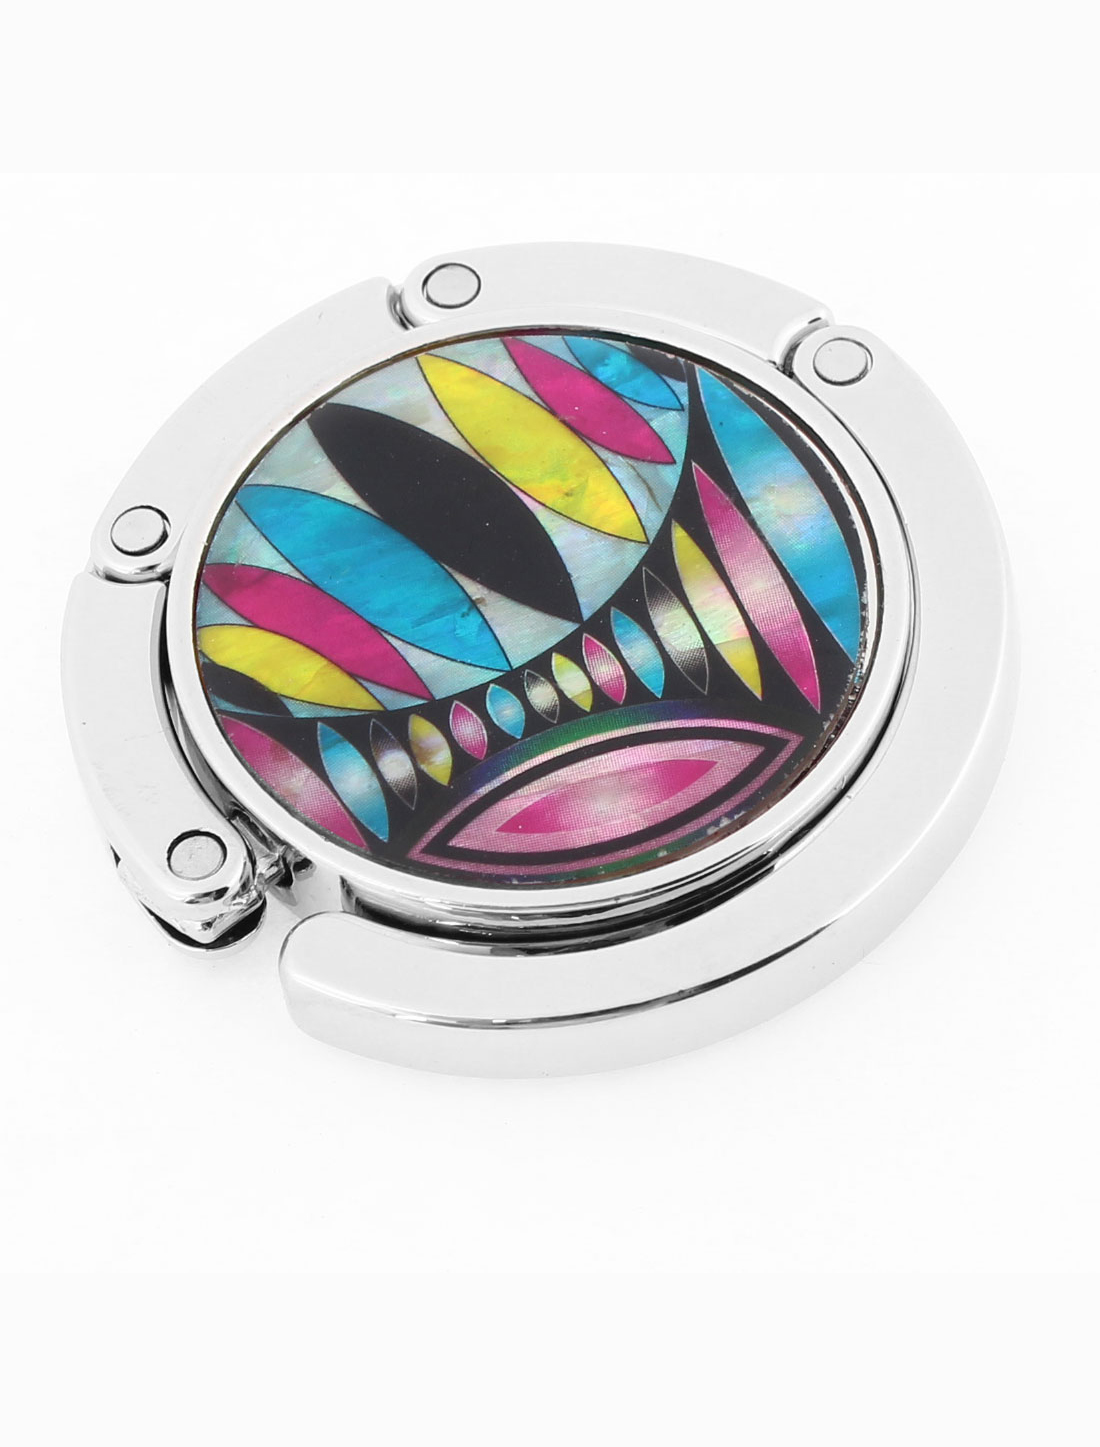 Lady Multicolor Ellipse Pattern Rubber Base Metal Handbag Hook Hanger